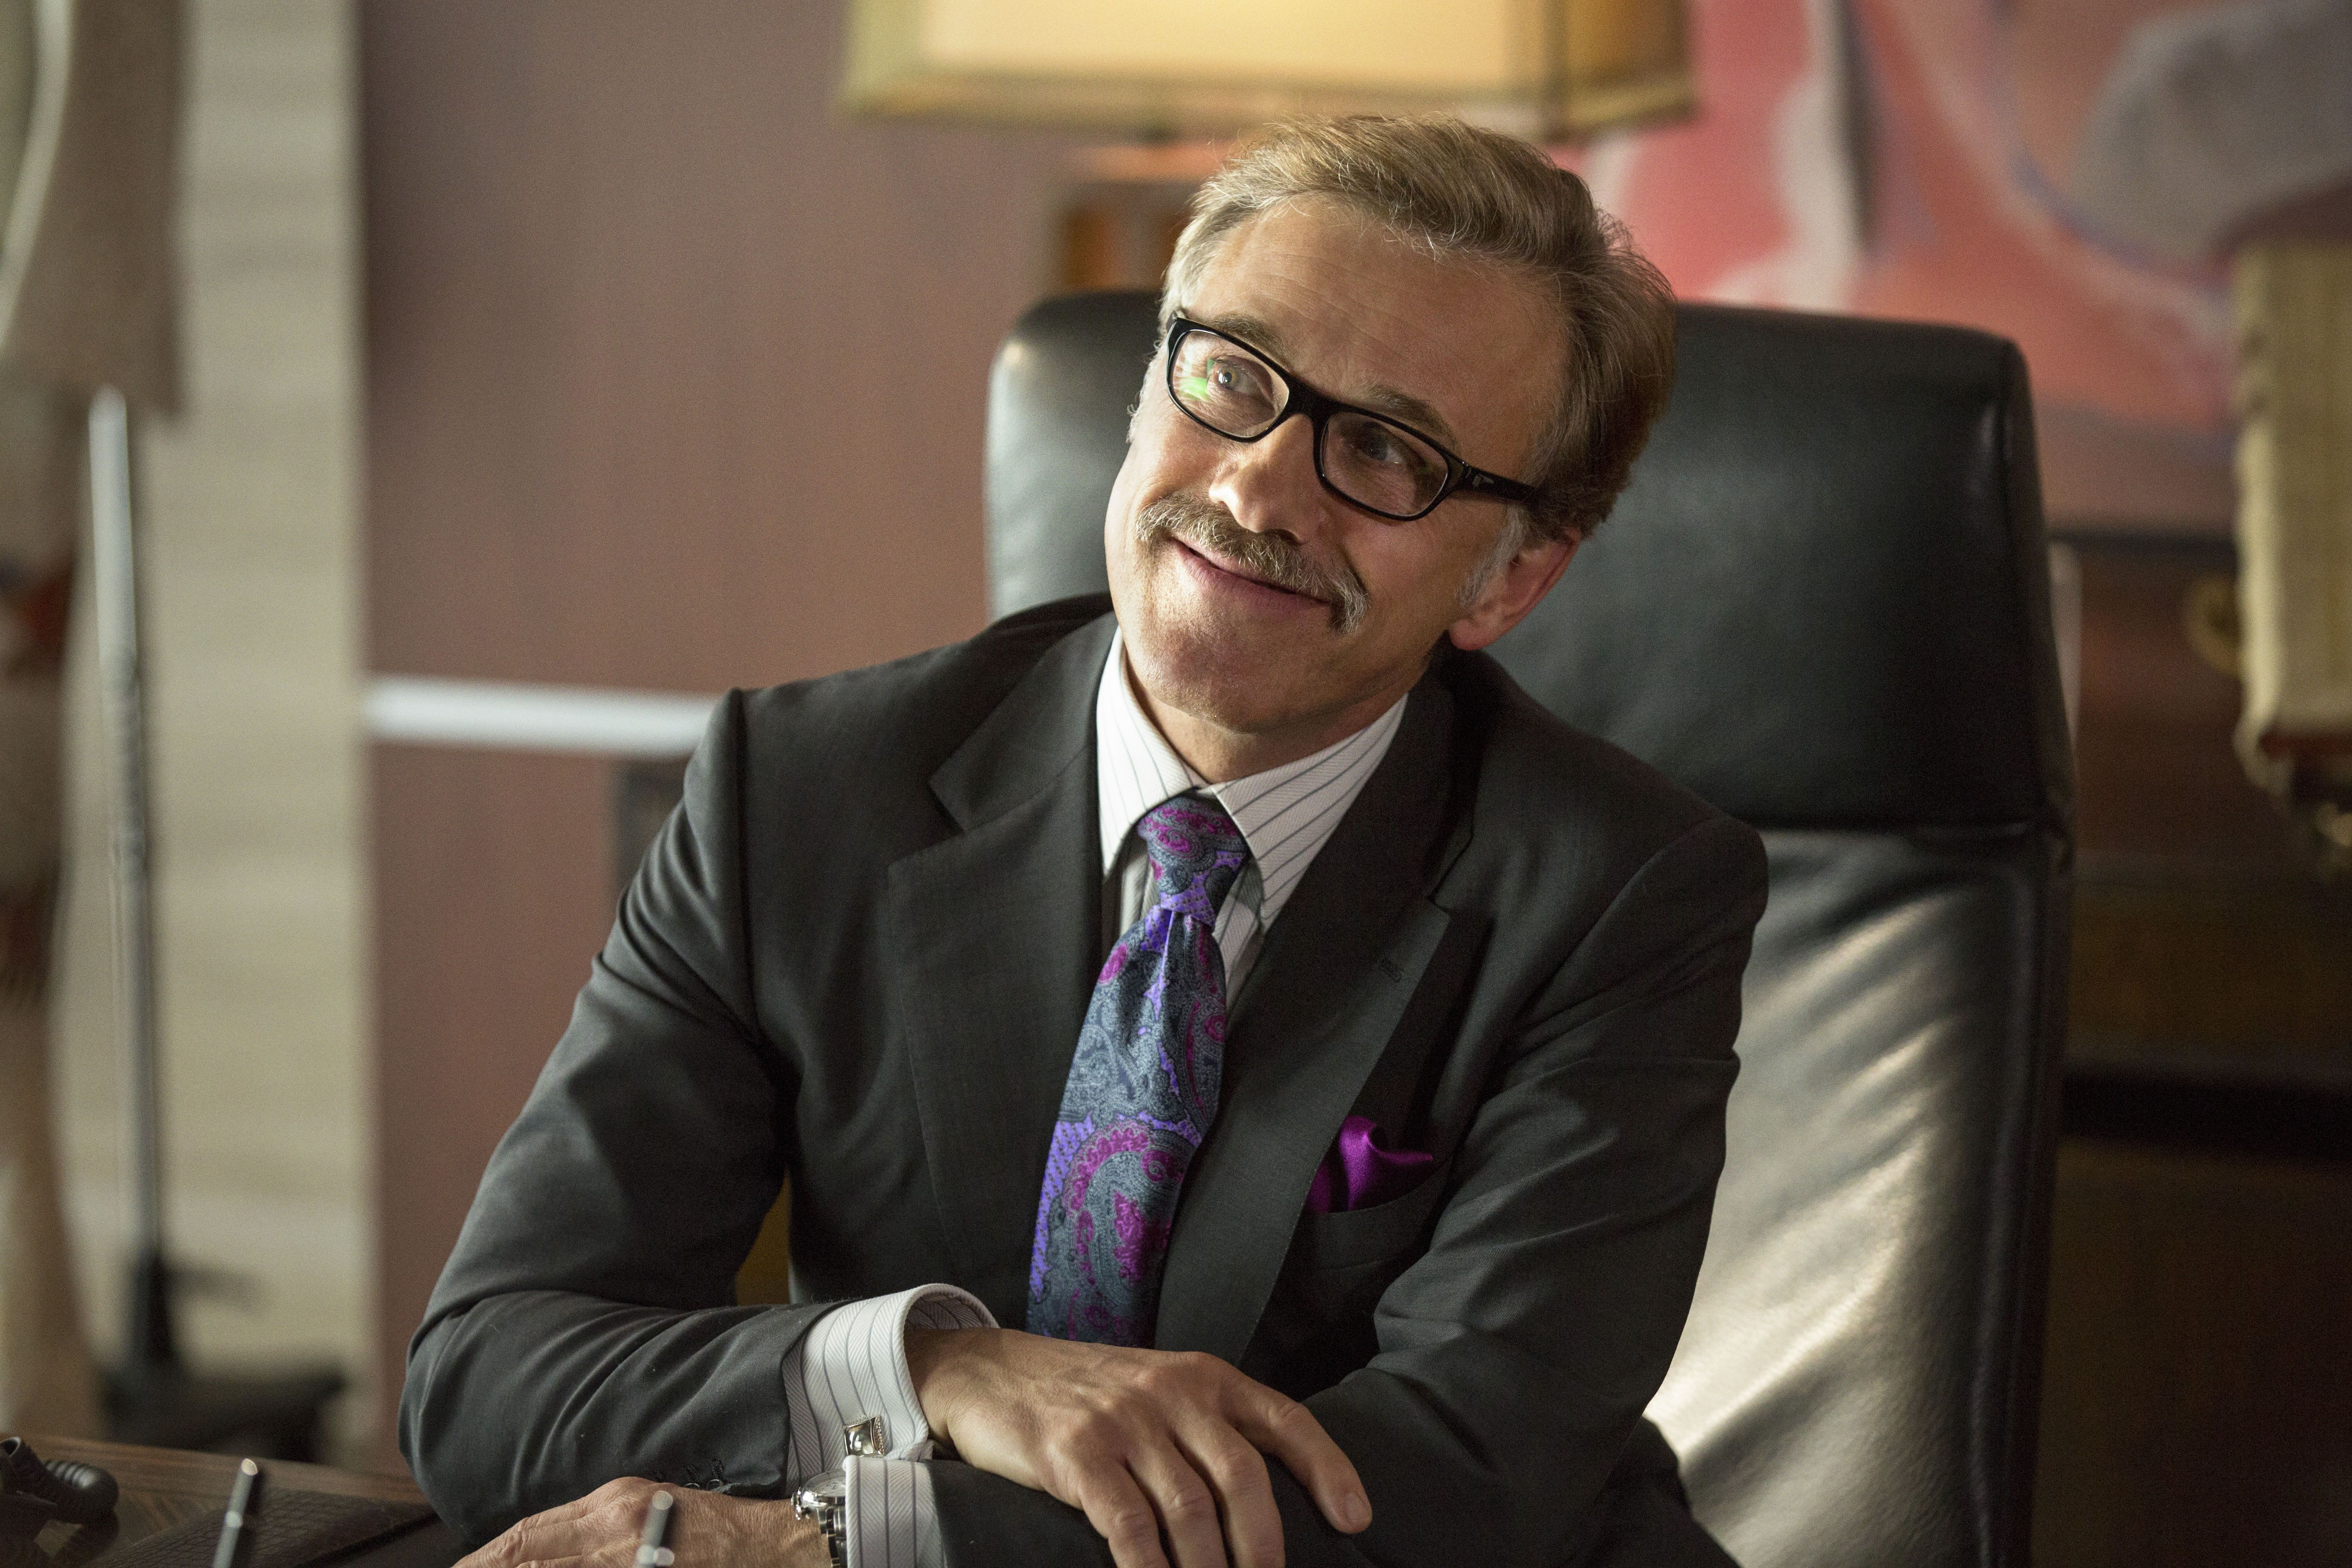 new horrible bosses images featuring jason bateman and horrible bosses 2 christoph waltz